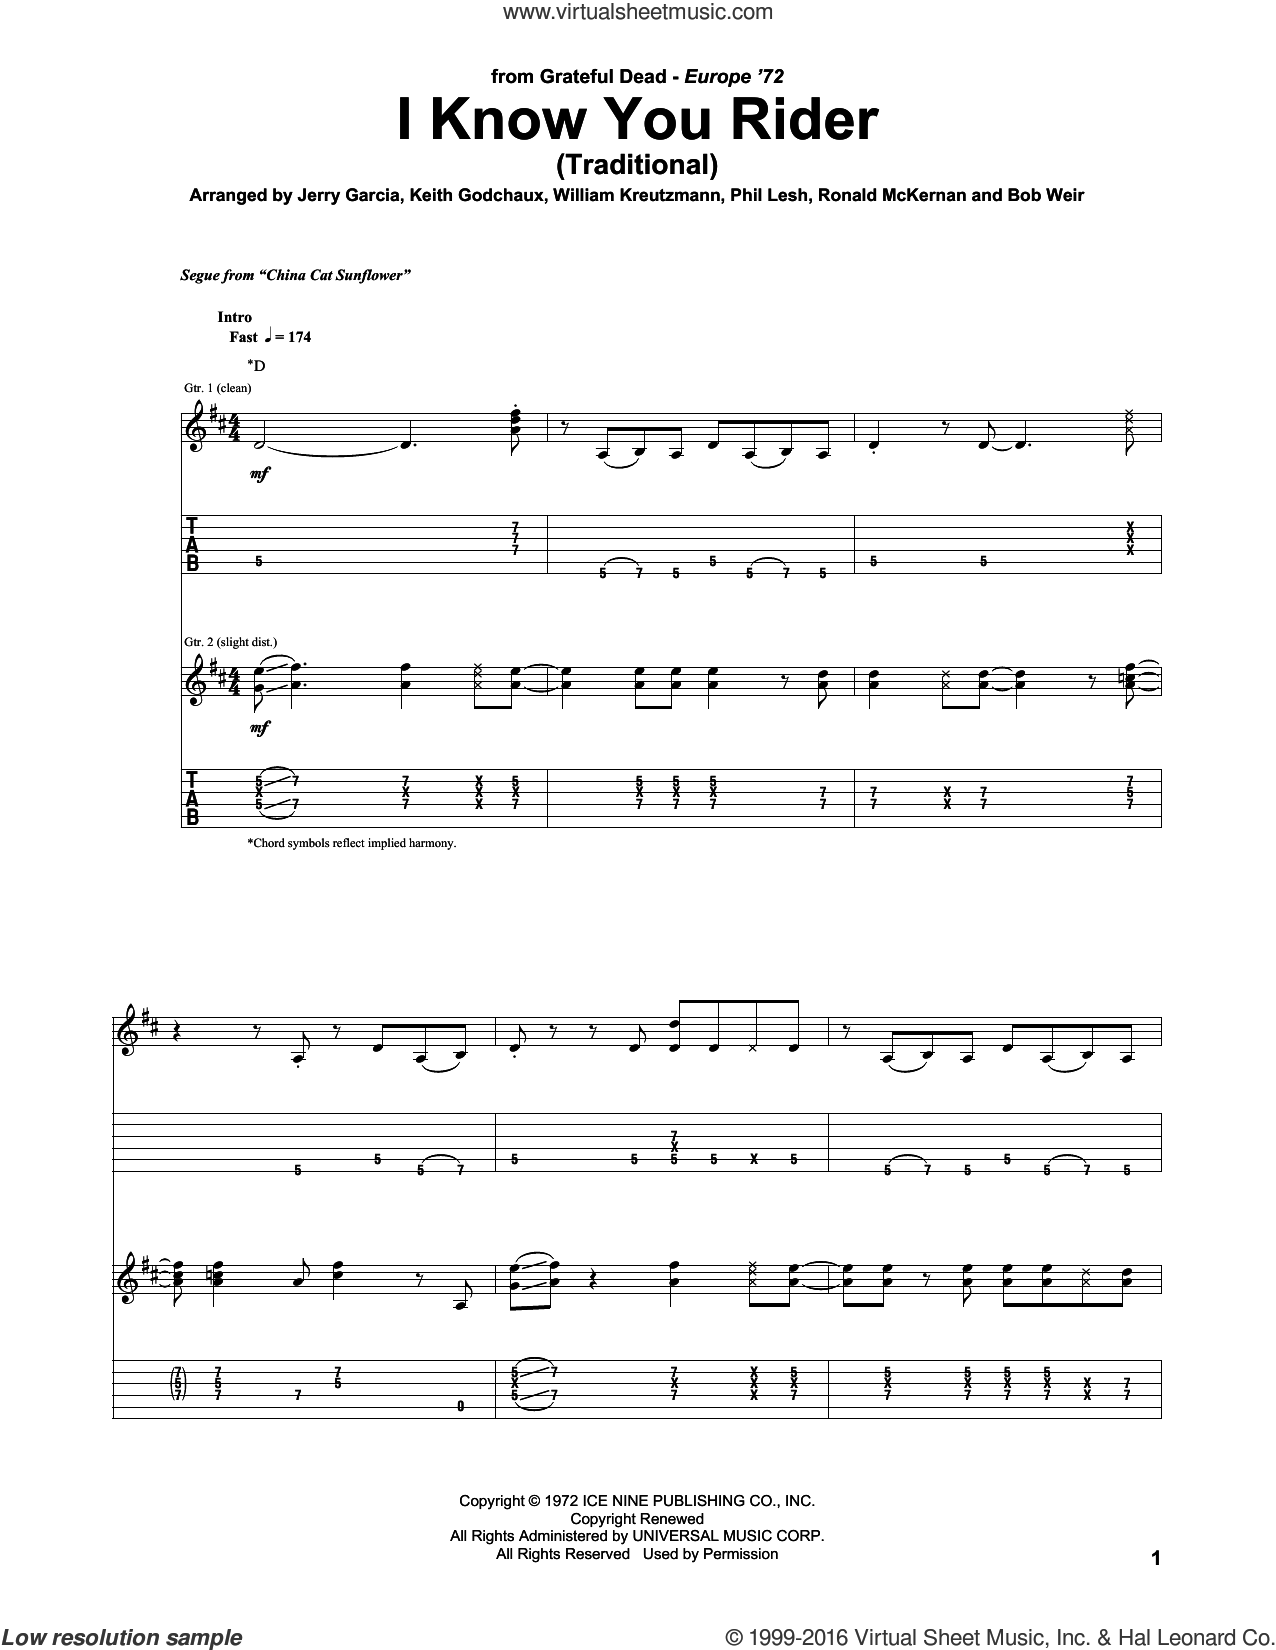 I Know You Rider sheet music for guitar (tablature) by Grateful Dead